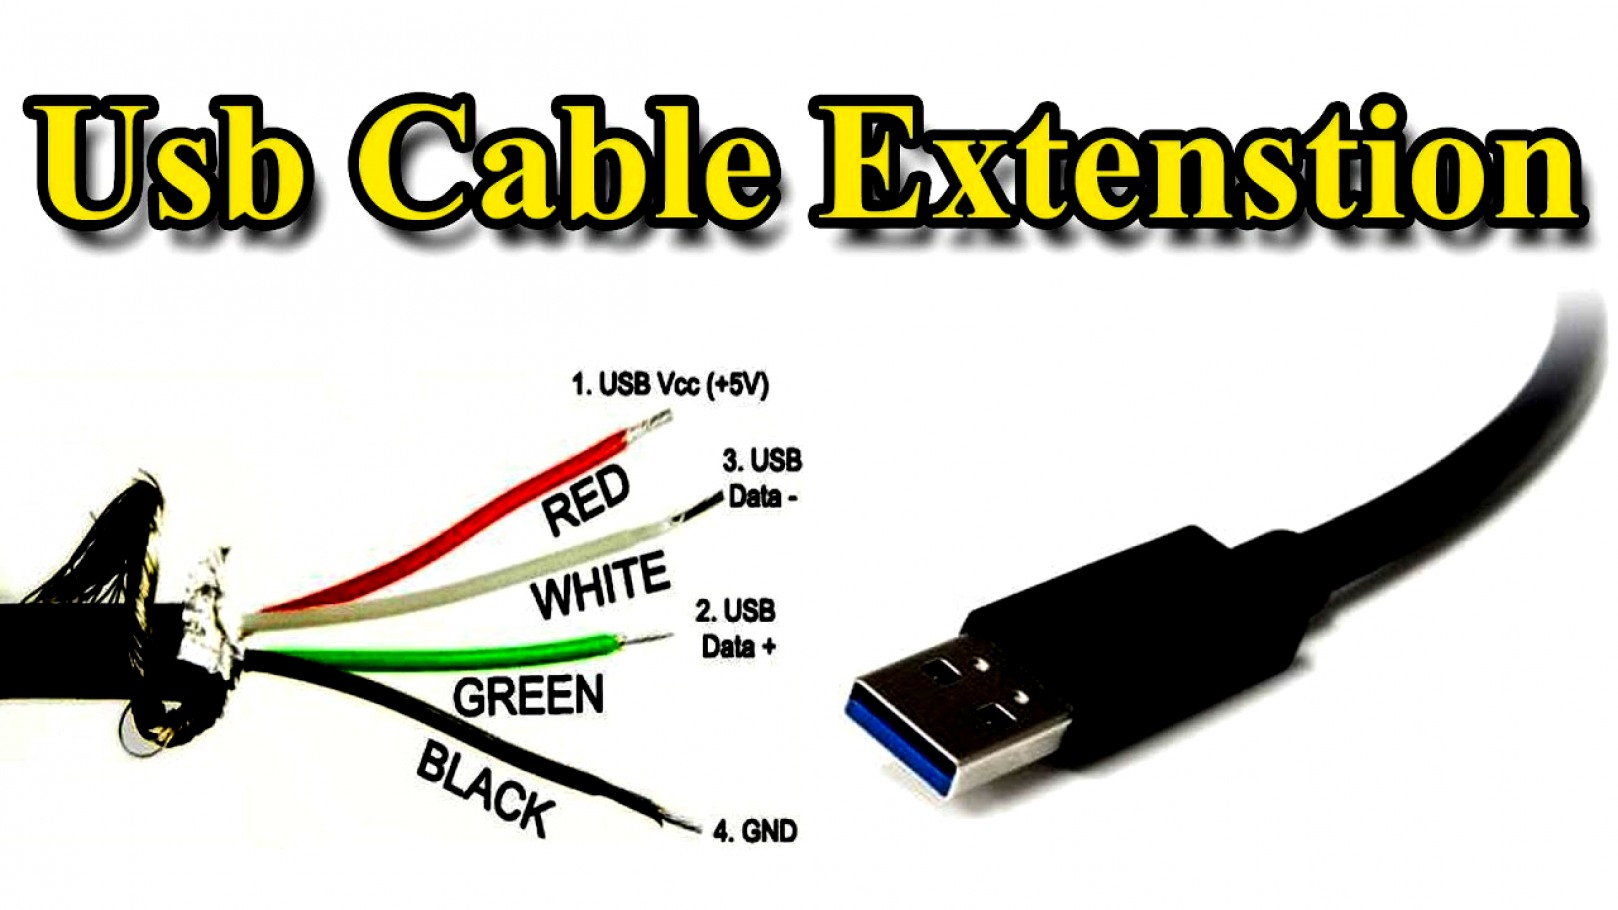 Usb Data Transfer Cable Wiring Diagram | Manual E-Books - Usb Transfer Cable Wiring Diagram